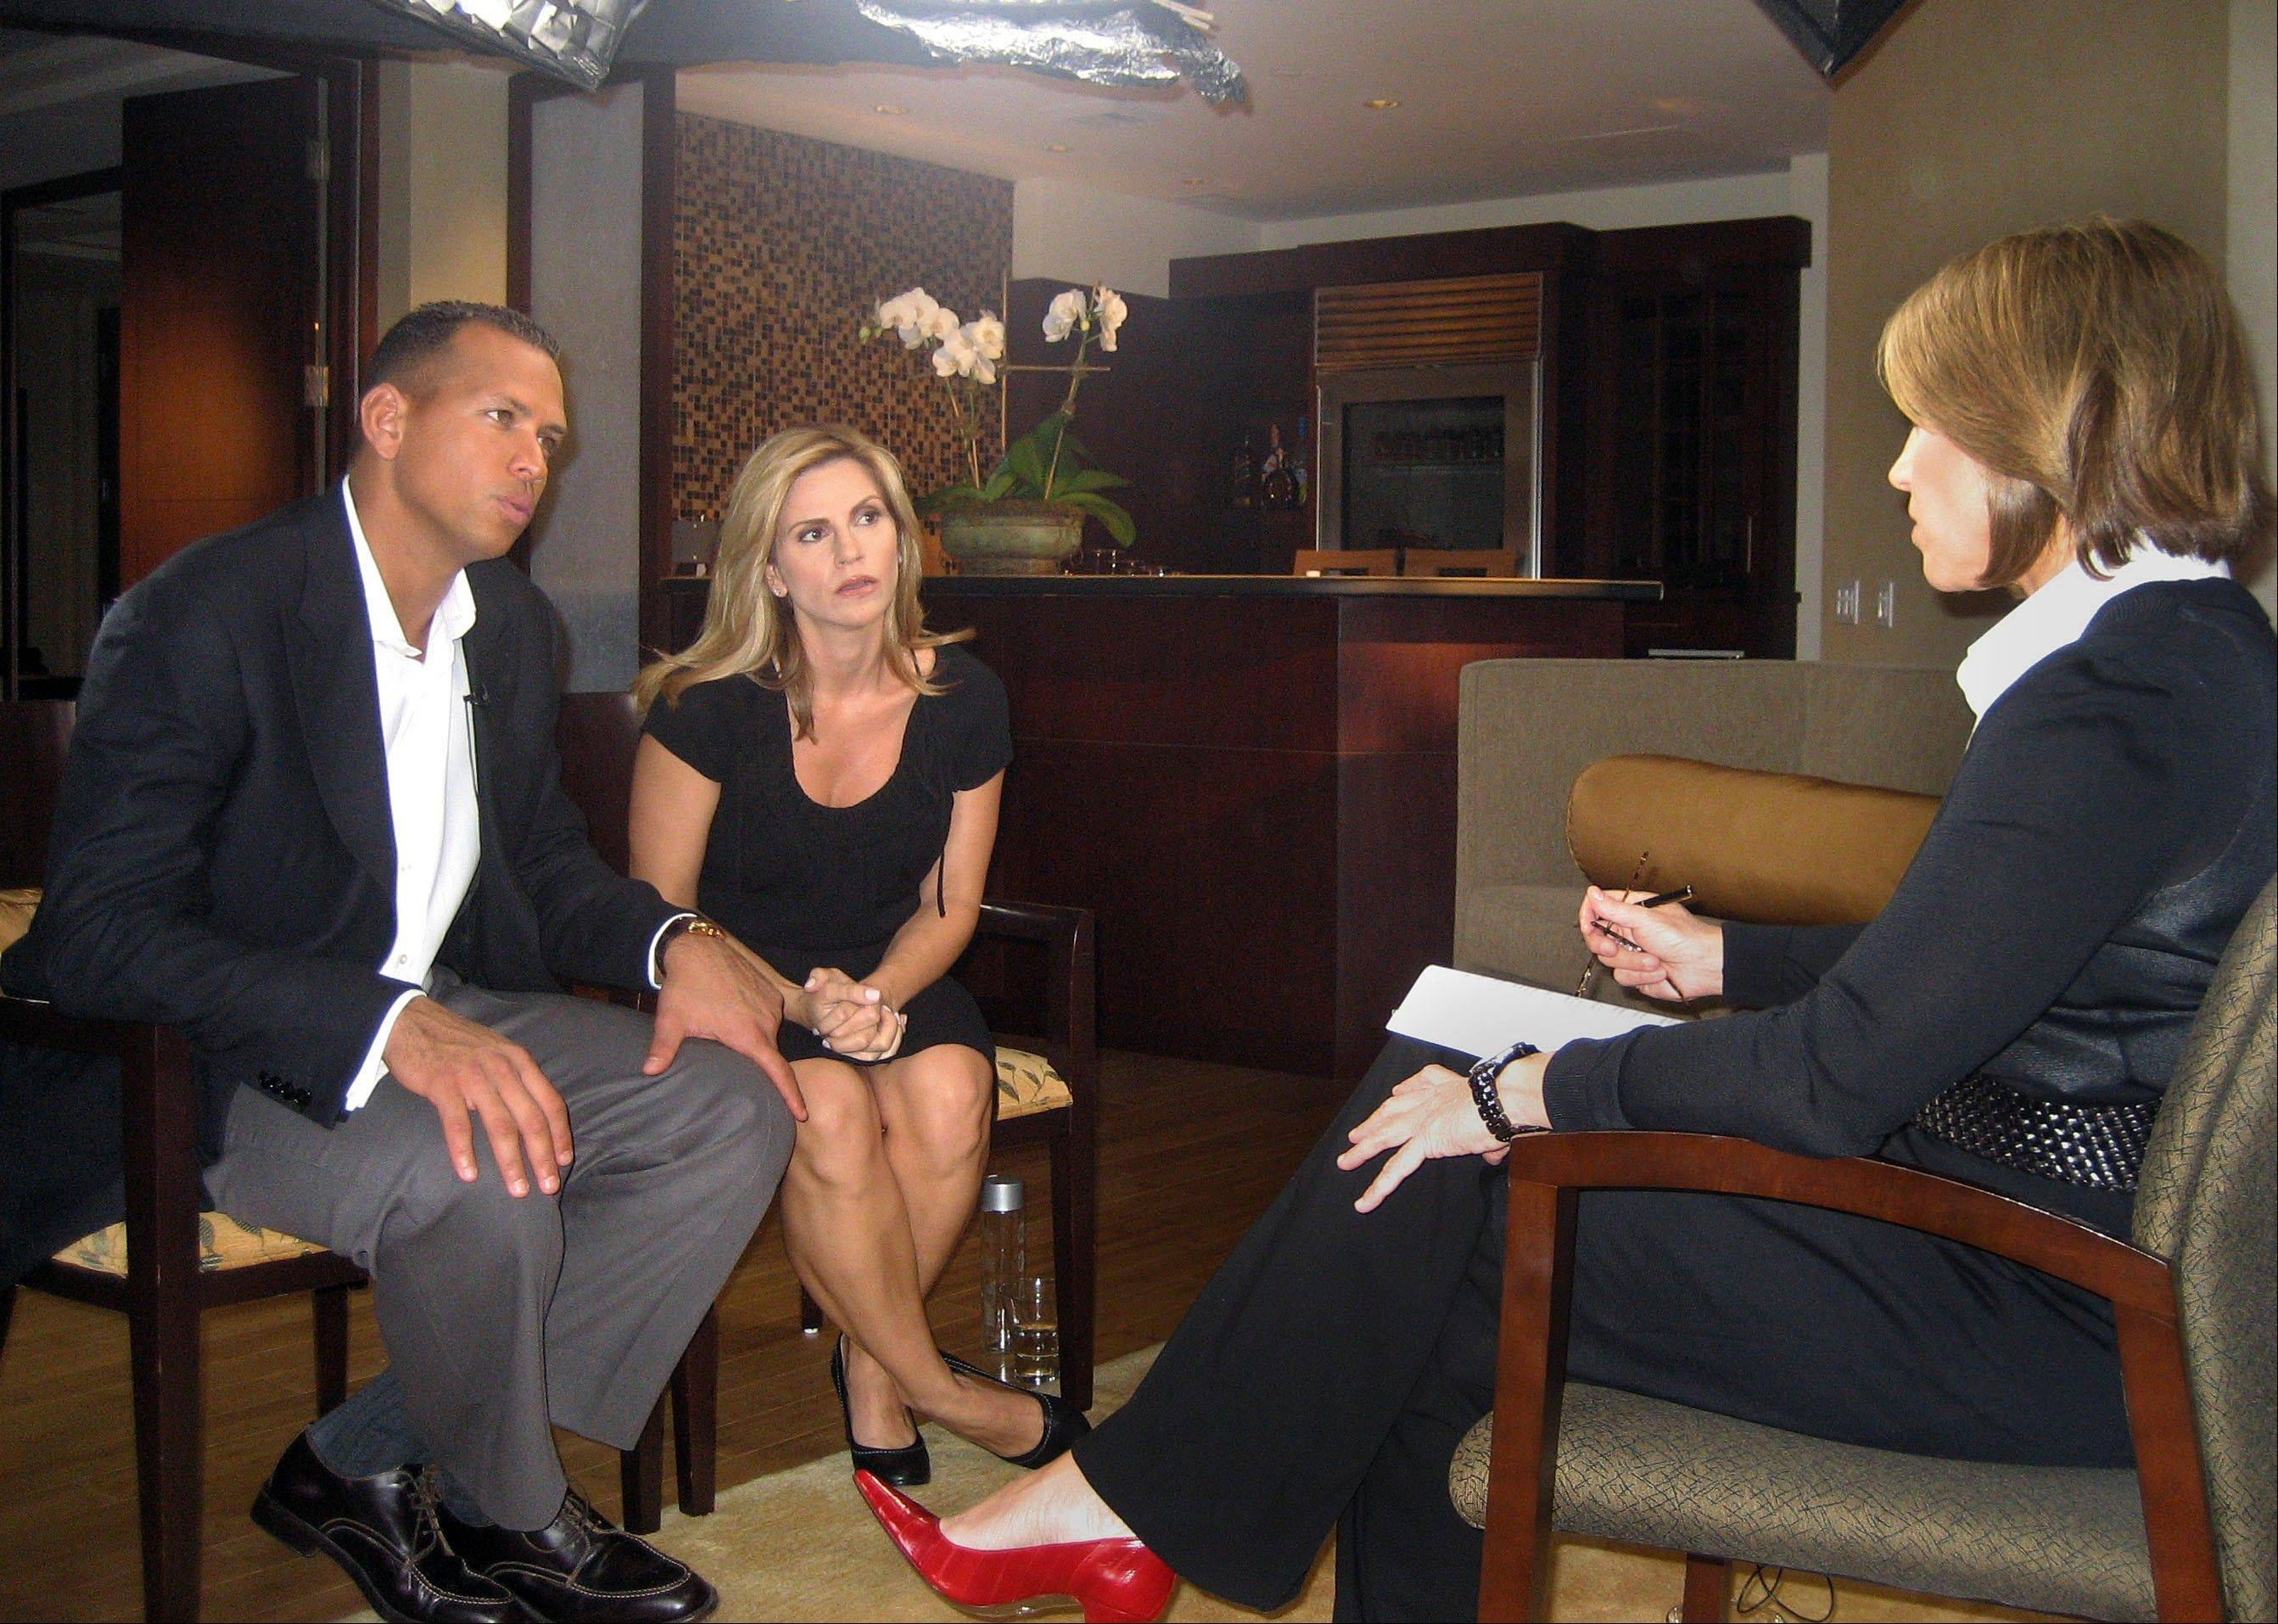 New York Yankee star Alex Rodriguez and his wife Cynthia talked with Katie Couric 2007 after the release of the Mitchell Report, which accusing scores of Major League Baseball players of using steroids. Now the family of All-American linebacker Manti Te'o has agreed to talk with Couric this week about the hoax involving a fake girlfriend linked to Te'o.